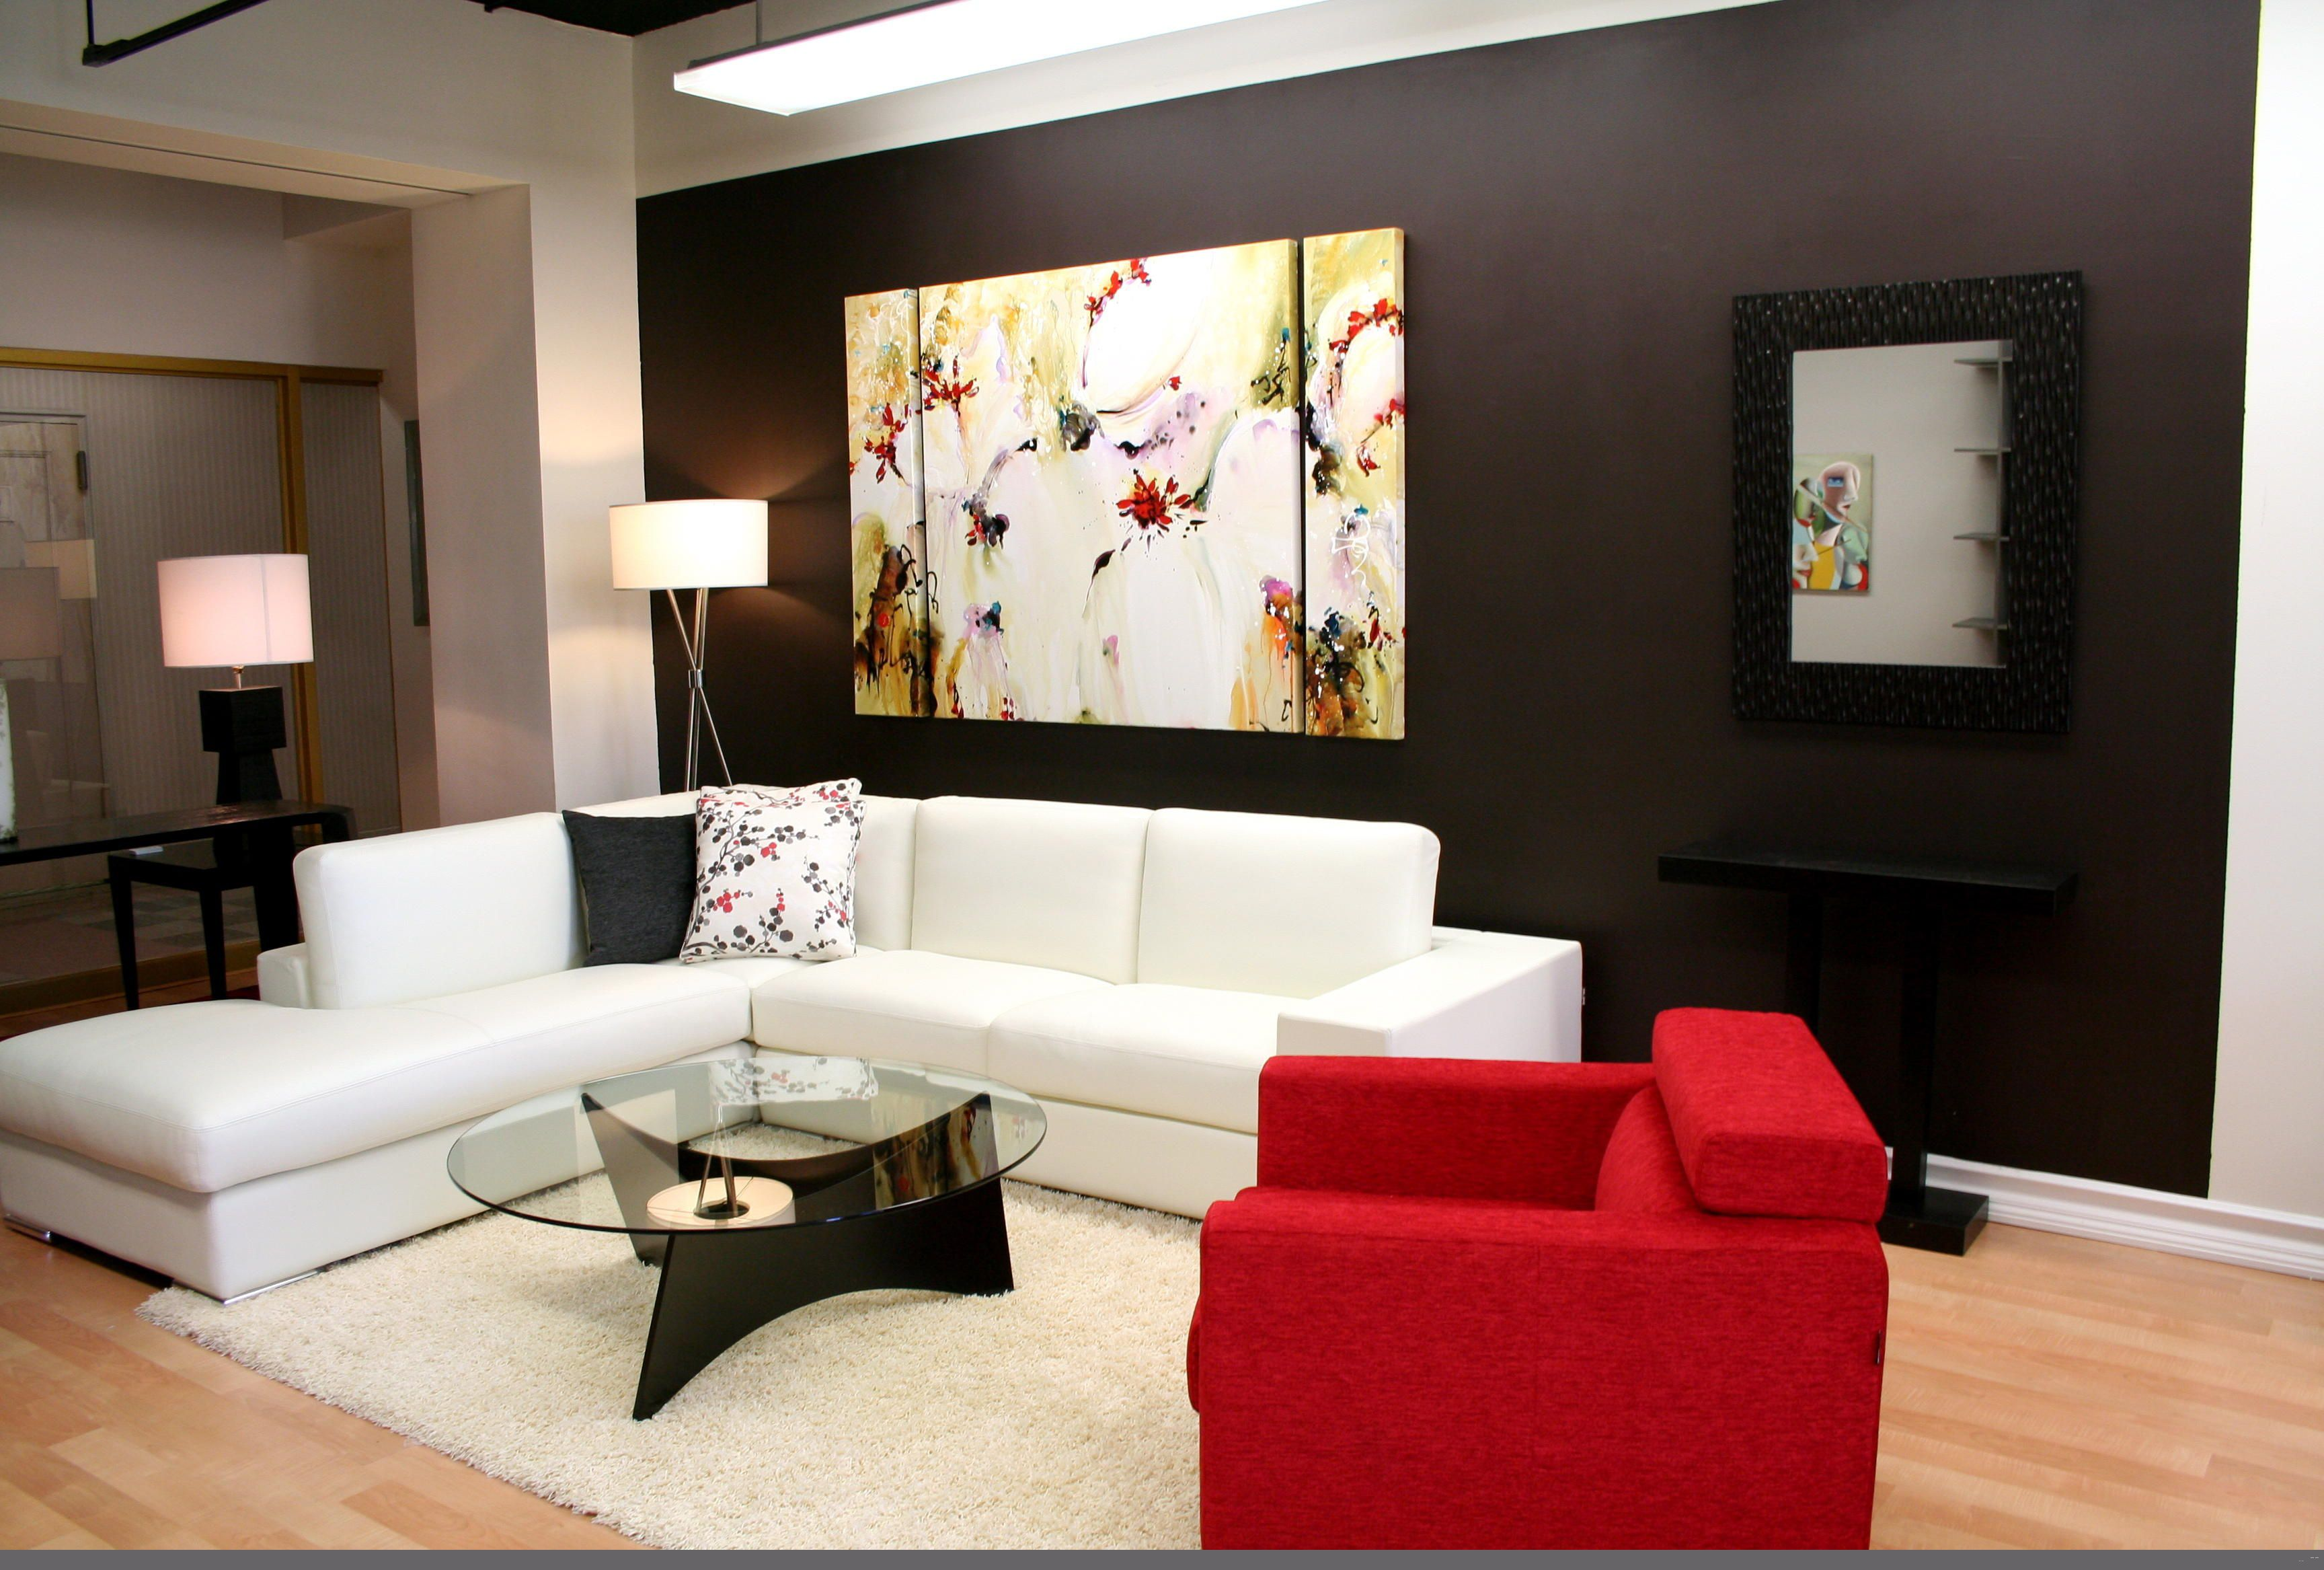 Place Red Sofa and White Sectional Sofa for Comfy Living Room Design Ideas with Glass Coffee Table